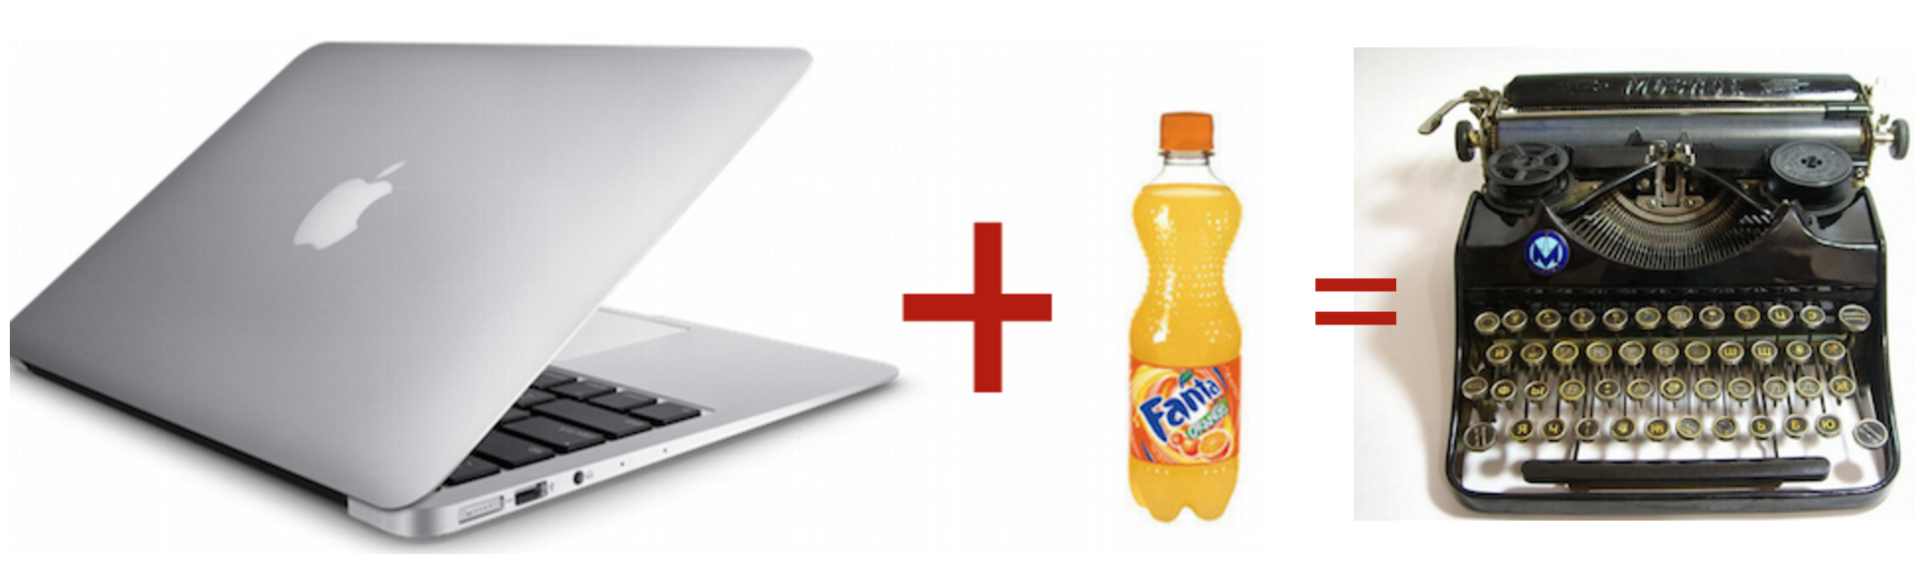 Macbook + Fanta=Ятрань-Москва? - 1